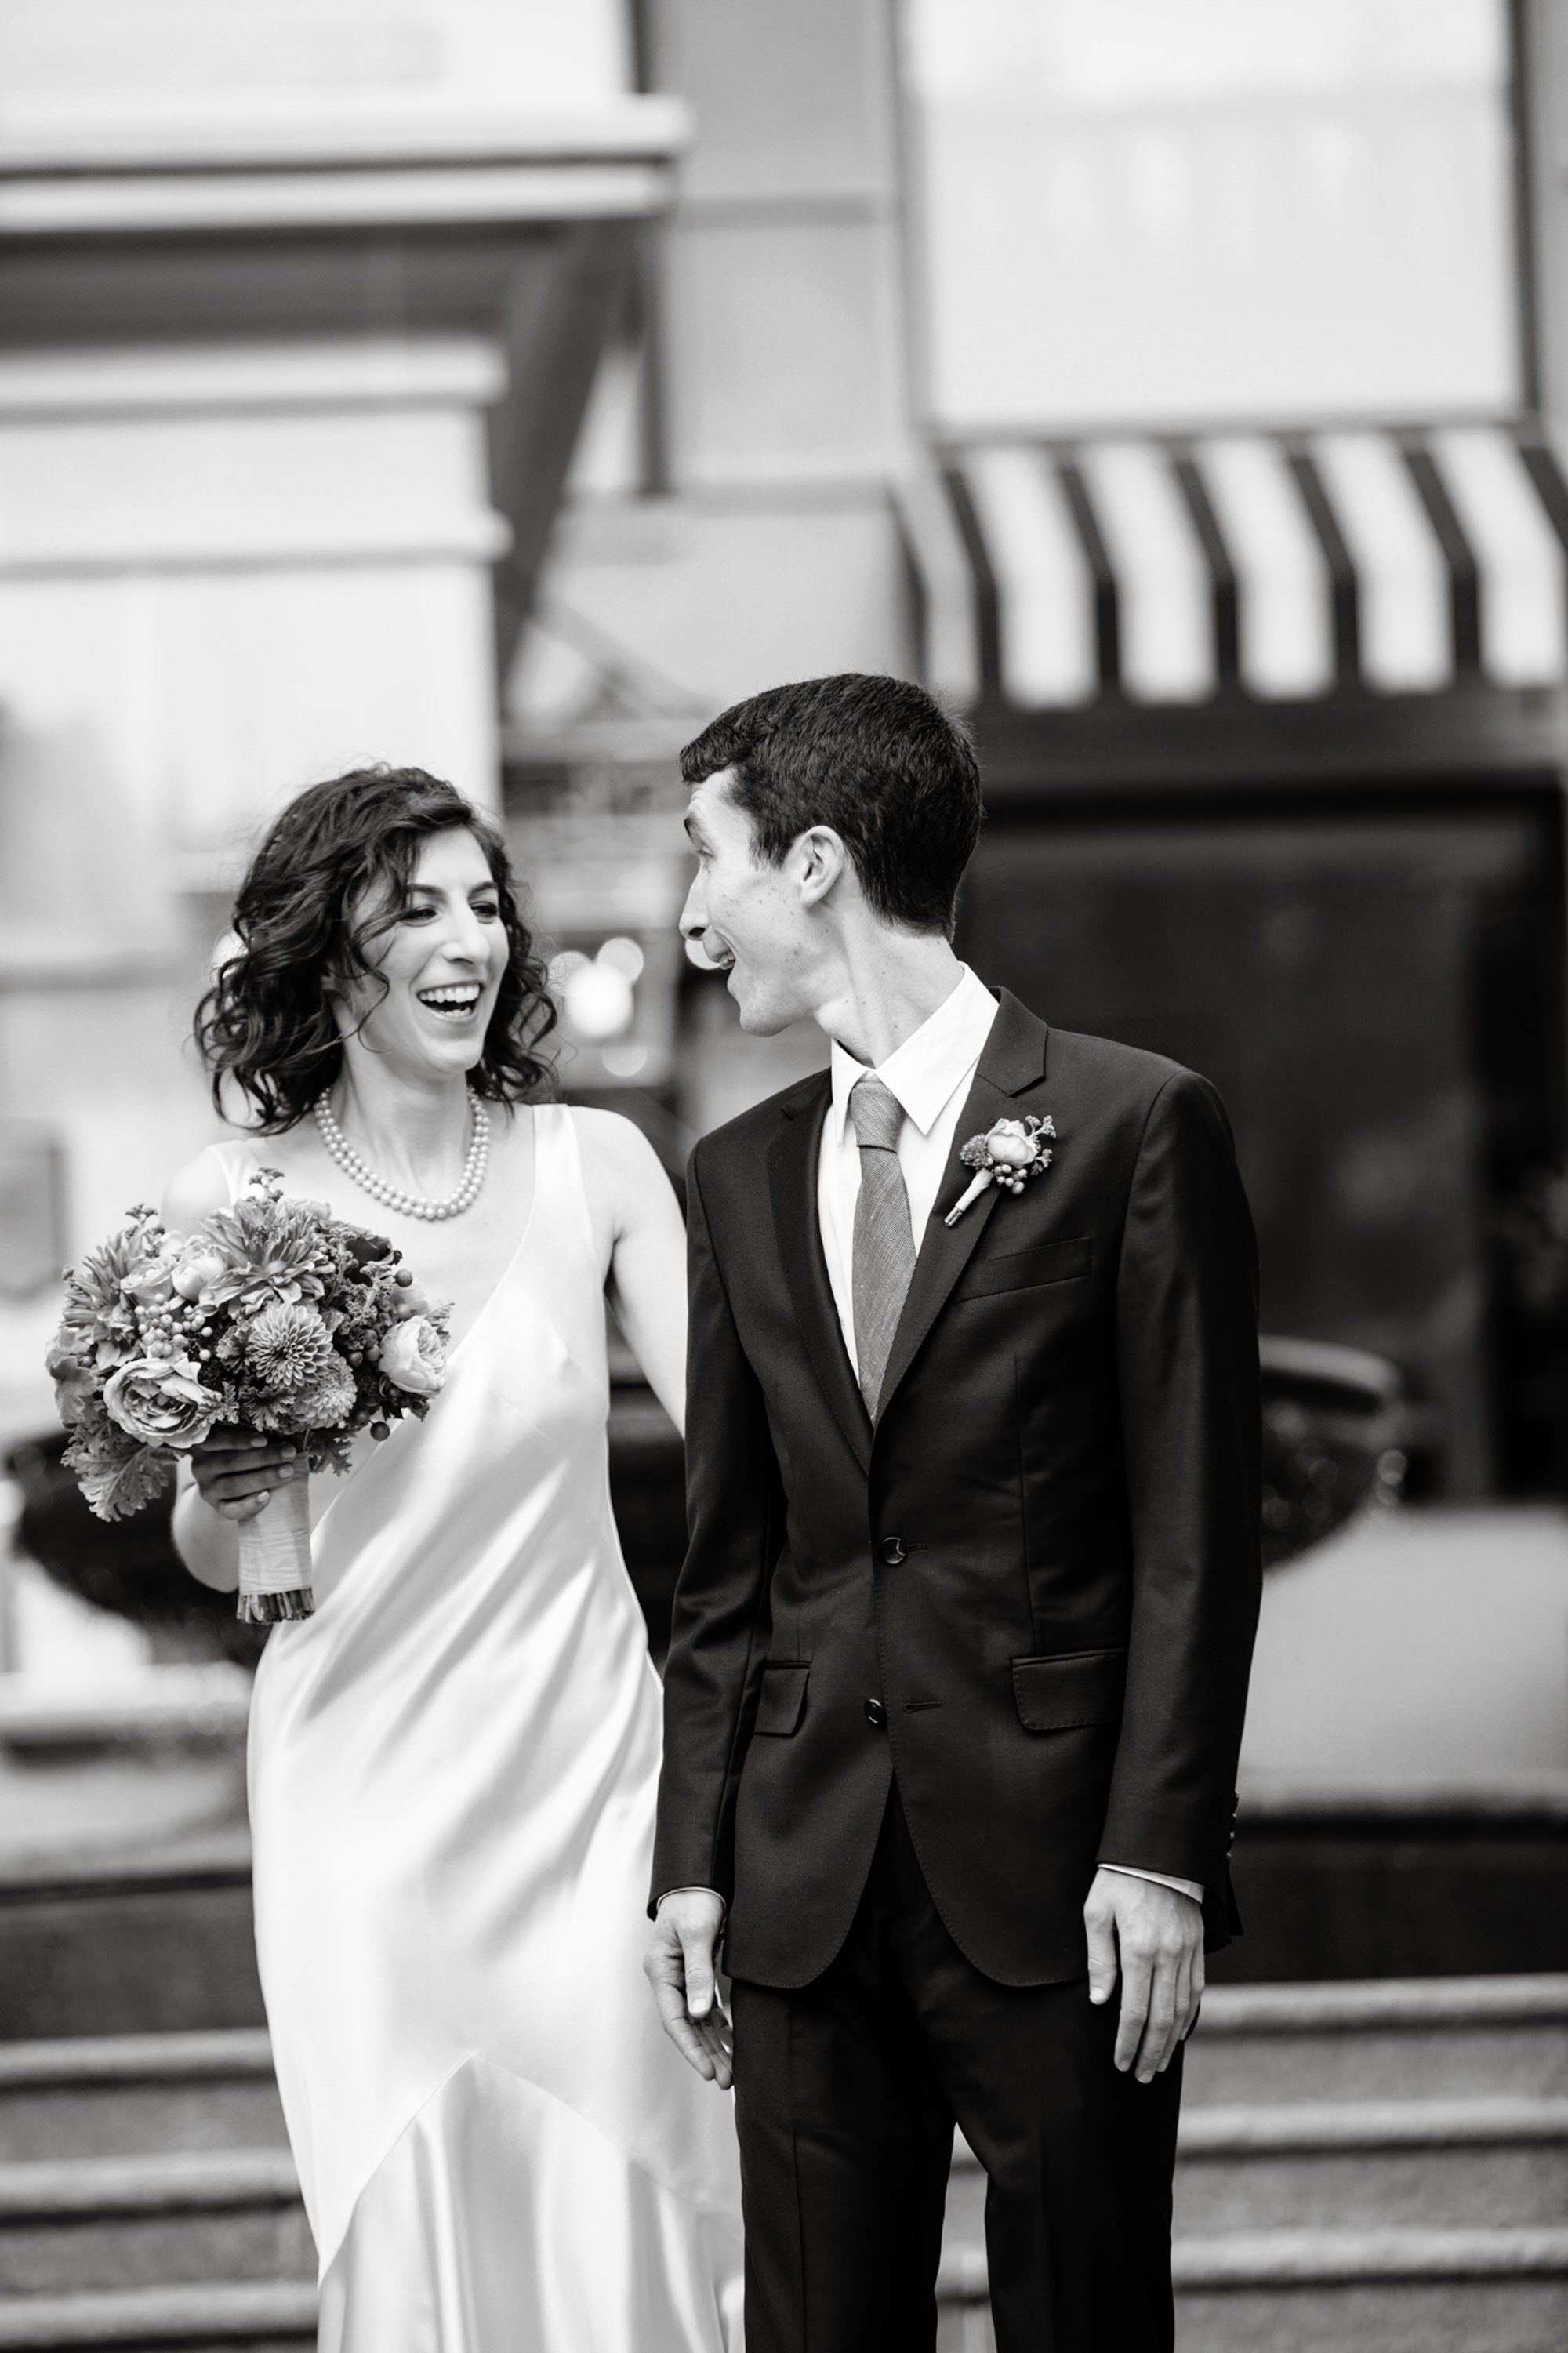 The bride and groom share their first look in front of the Willard InterContinental Hotel.